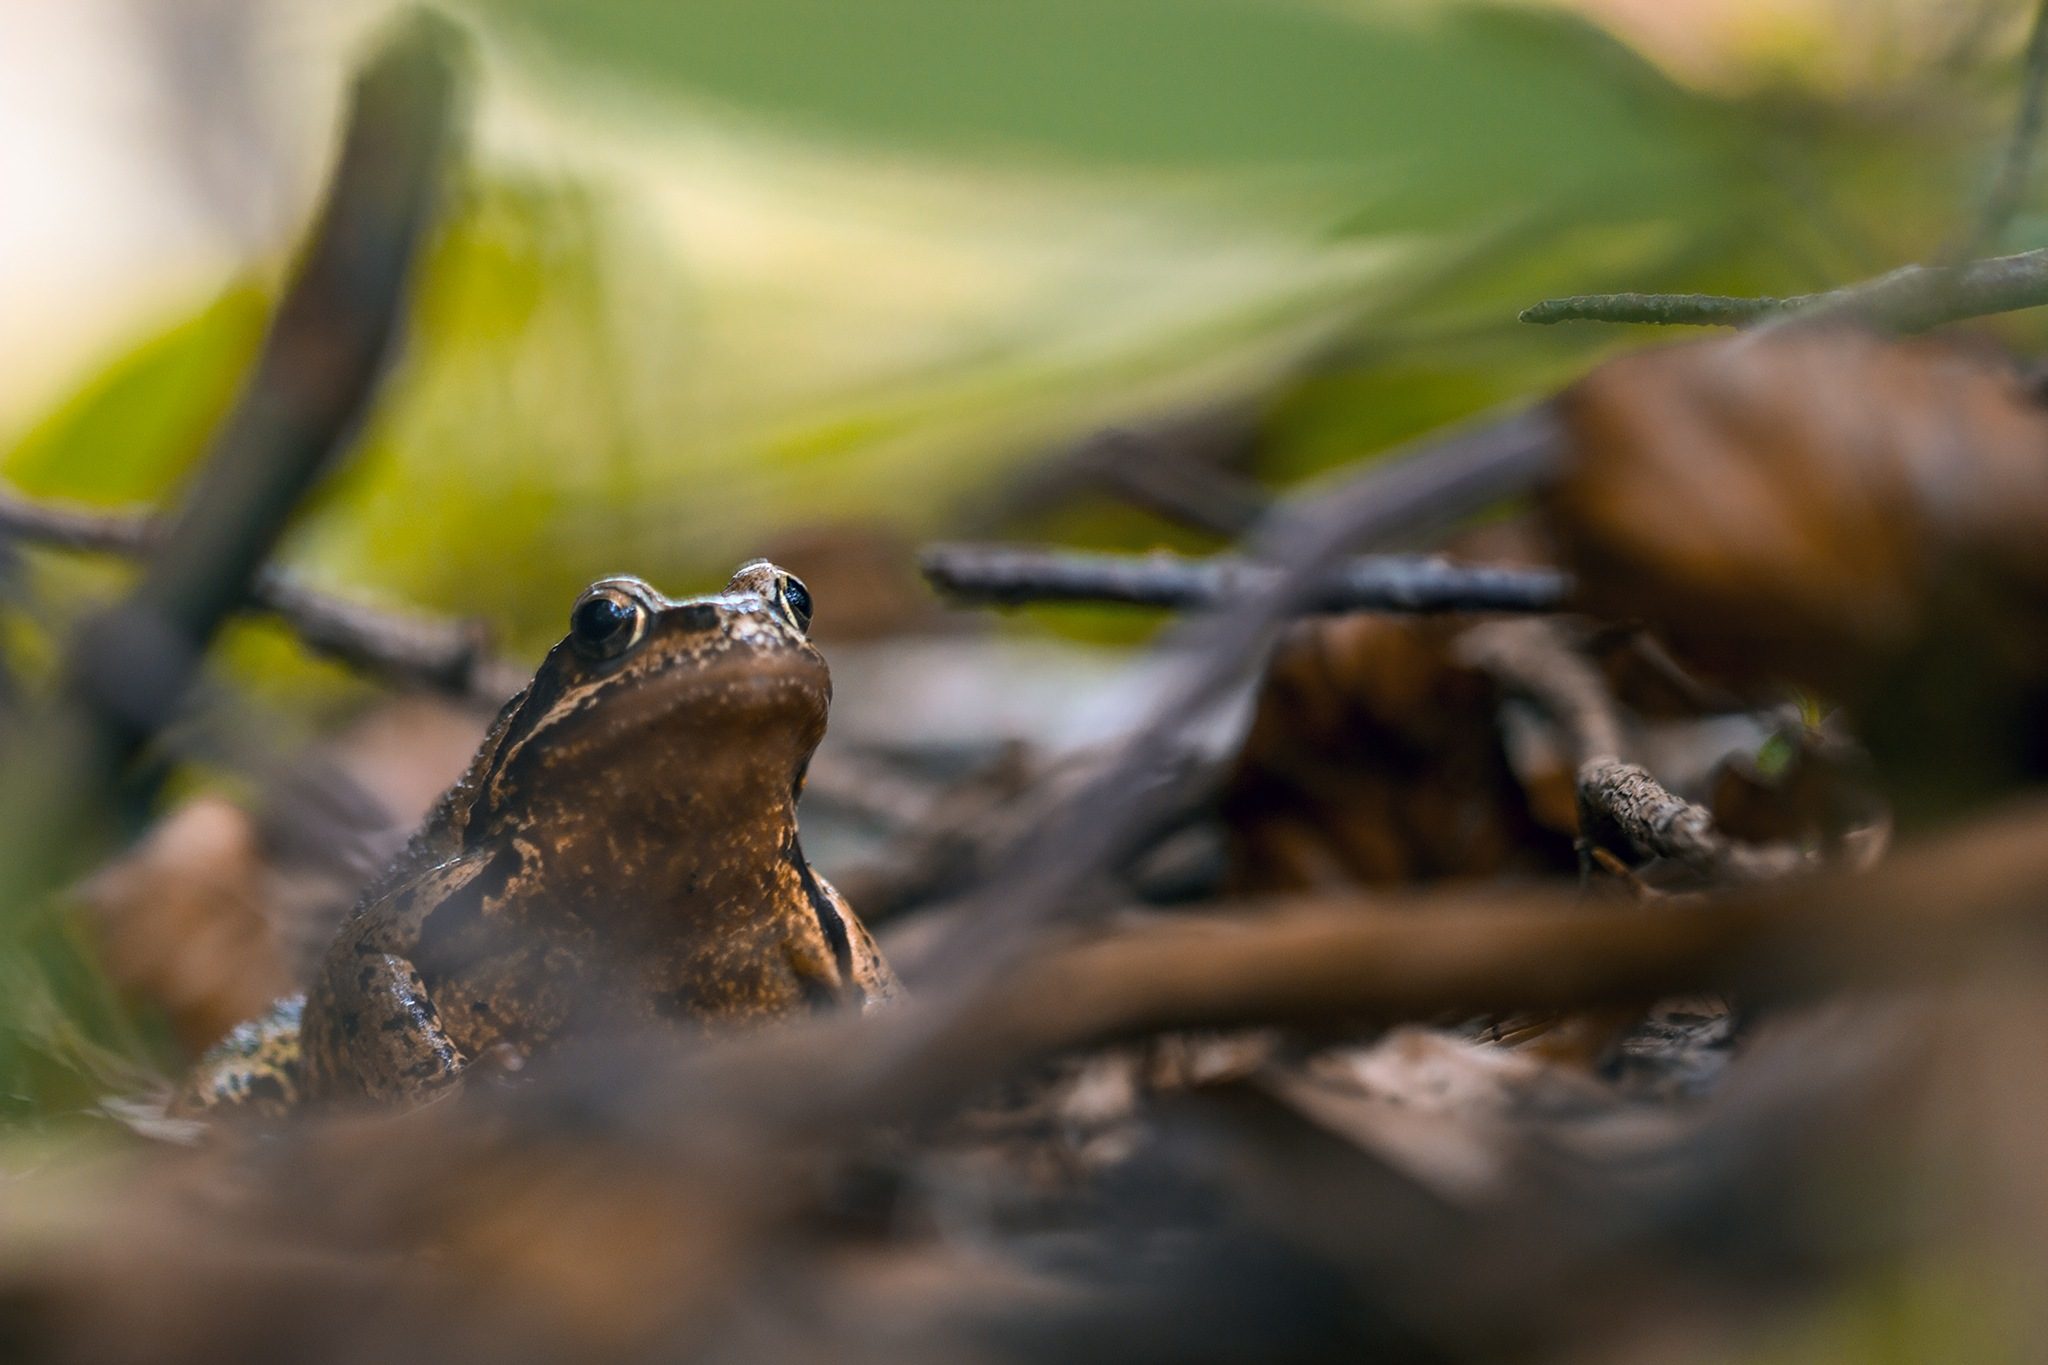 Grenouille by Yves Droeven